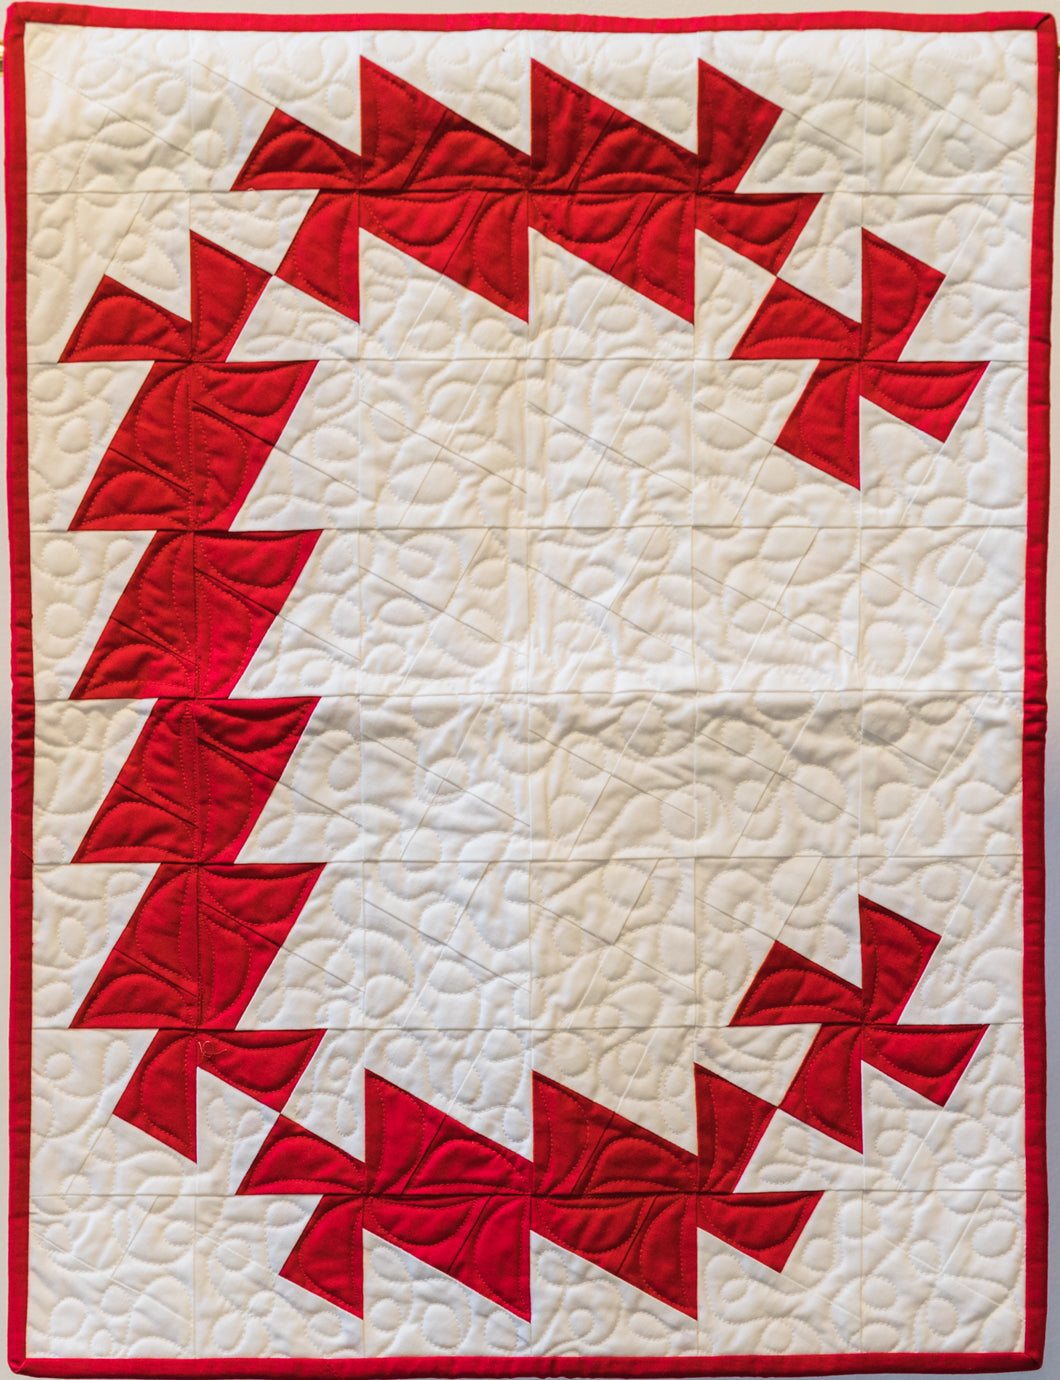 Quilt #08 - C is for Cornell and So Much More!